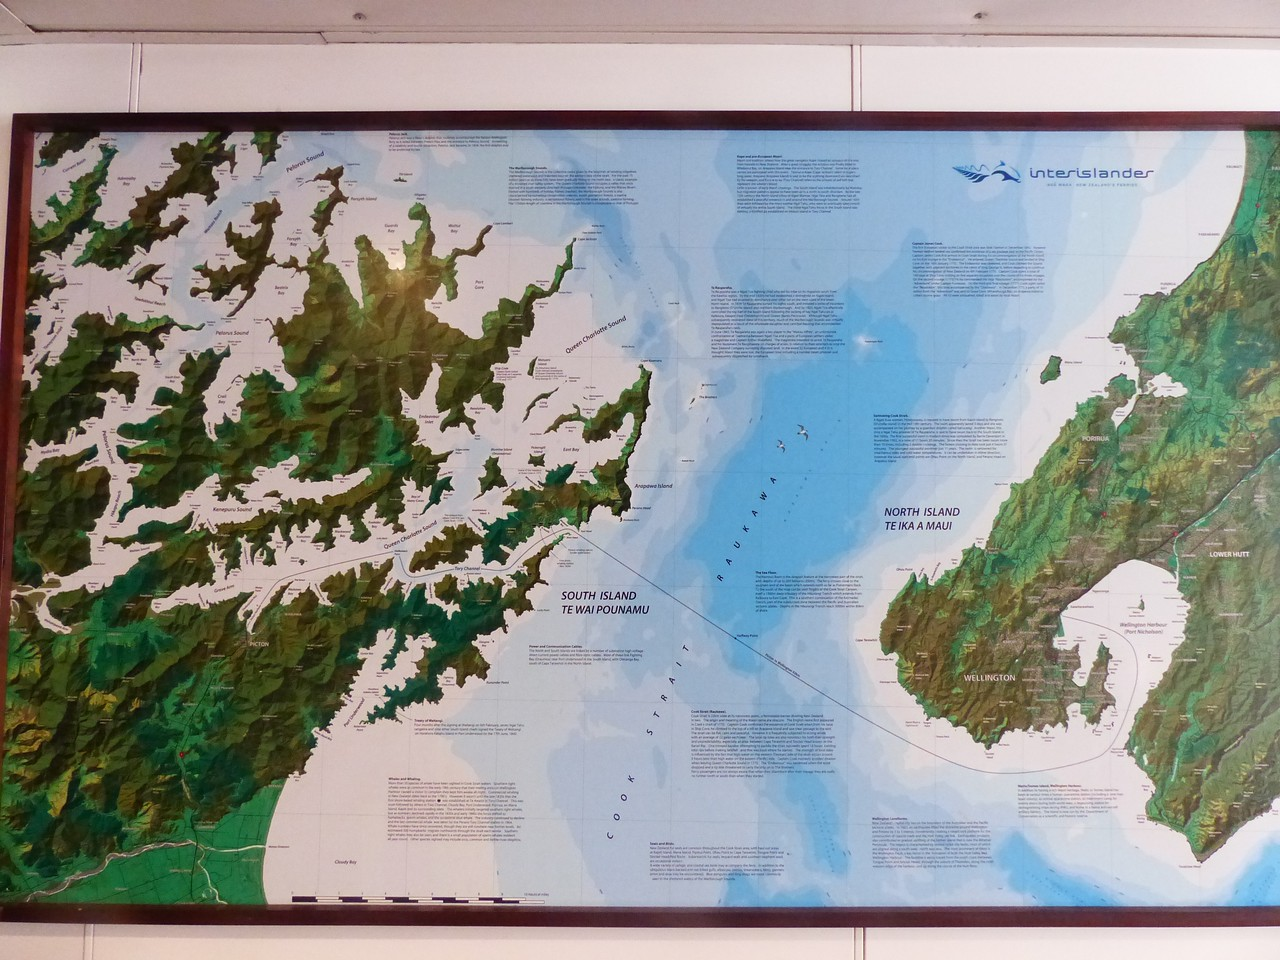 The ferry ride across from Wellington to the South Island  is about 3 ½ hours. There are a maze of channels and islands when you reach the South Island. Unfortunately, our trip wasn't long enough to spend any time there.